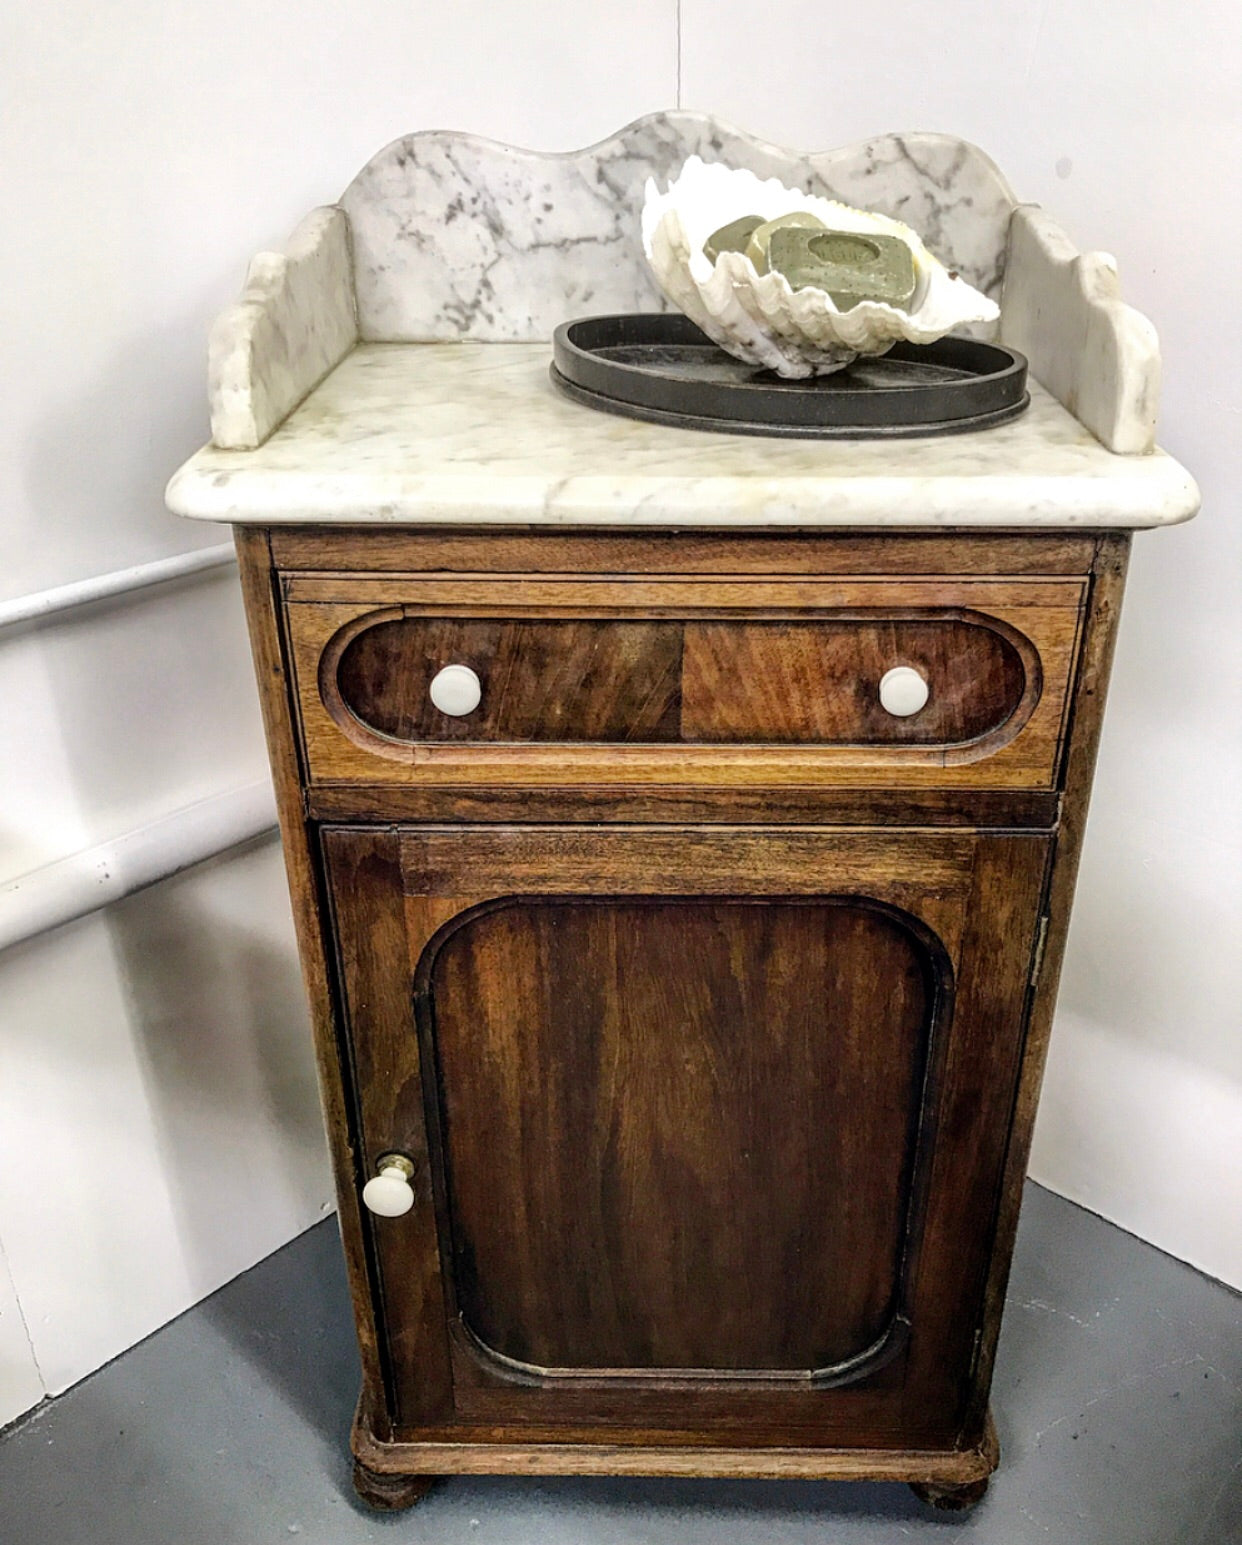 19th century pot cupboard with Carrara marble top and original ceramic knobs.